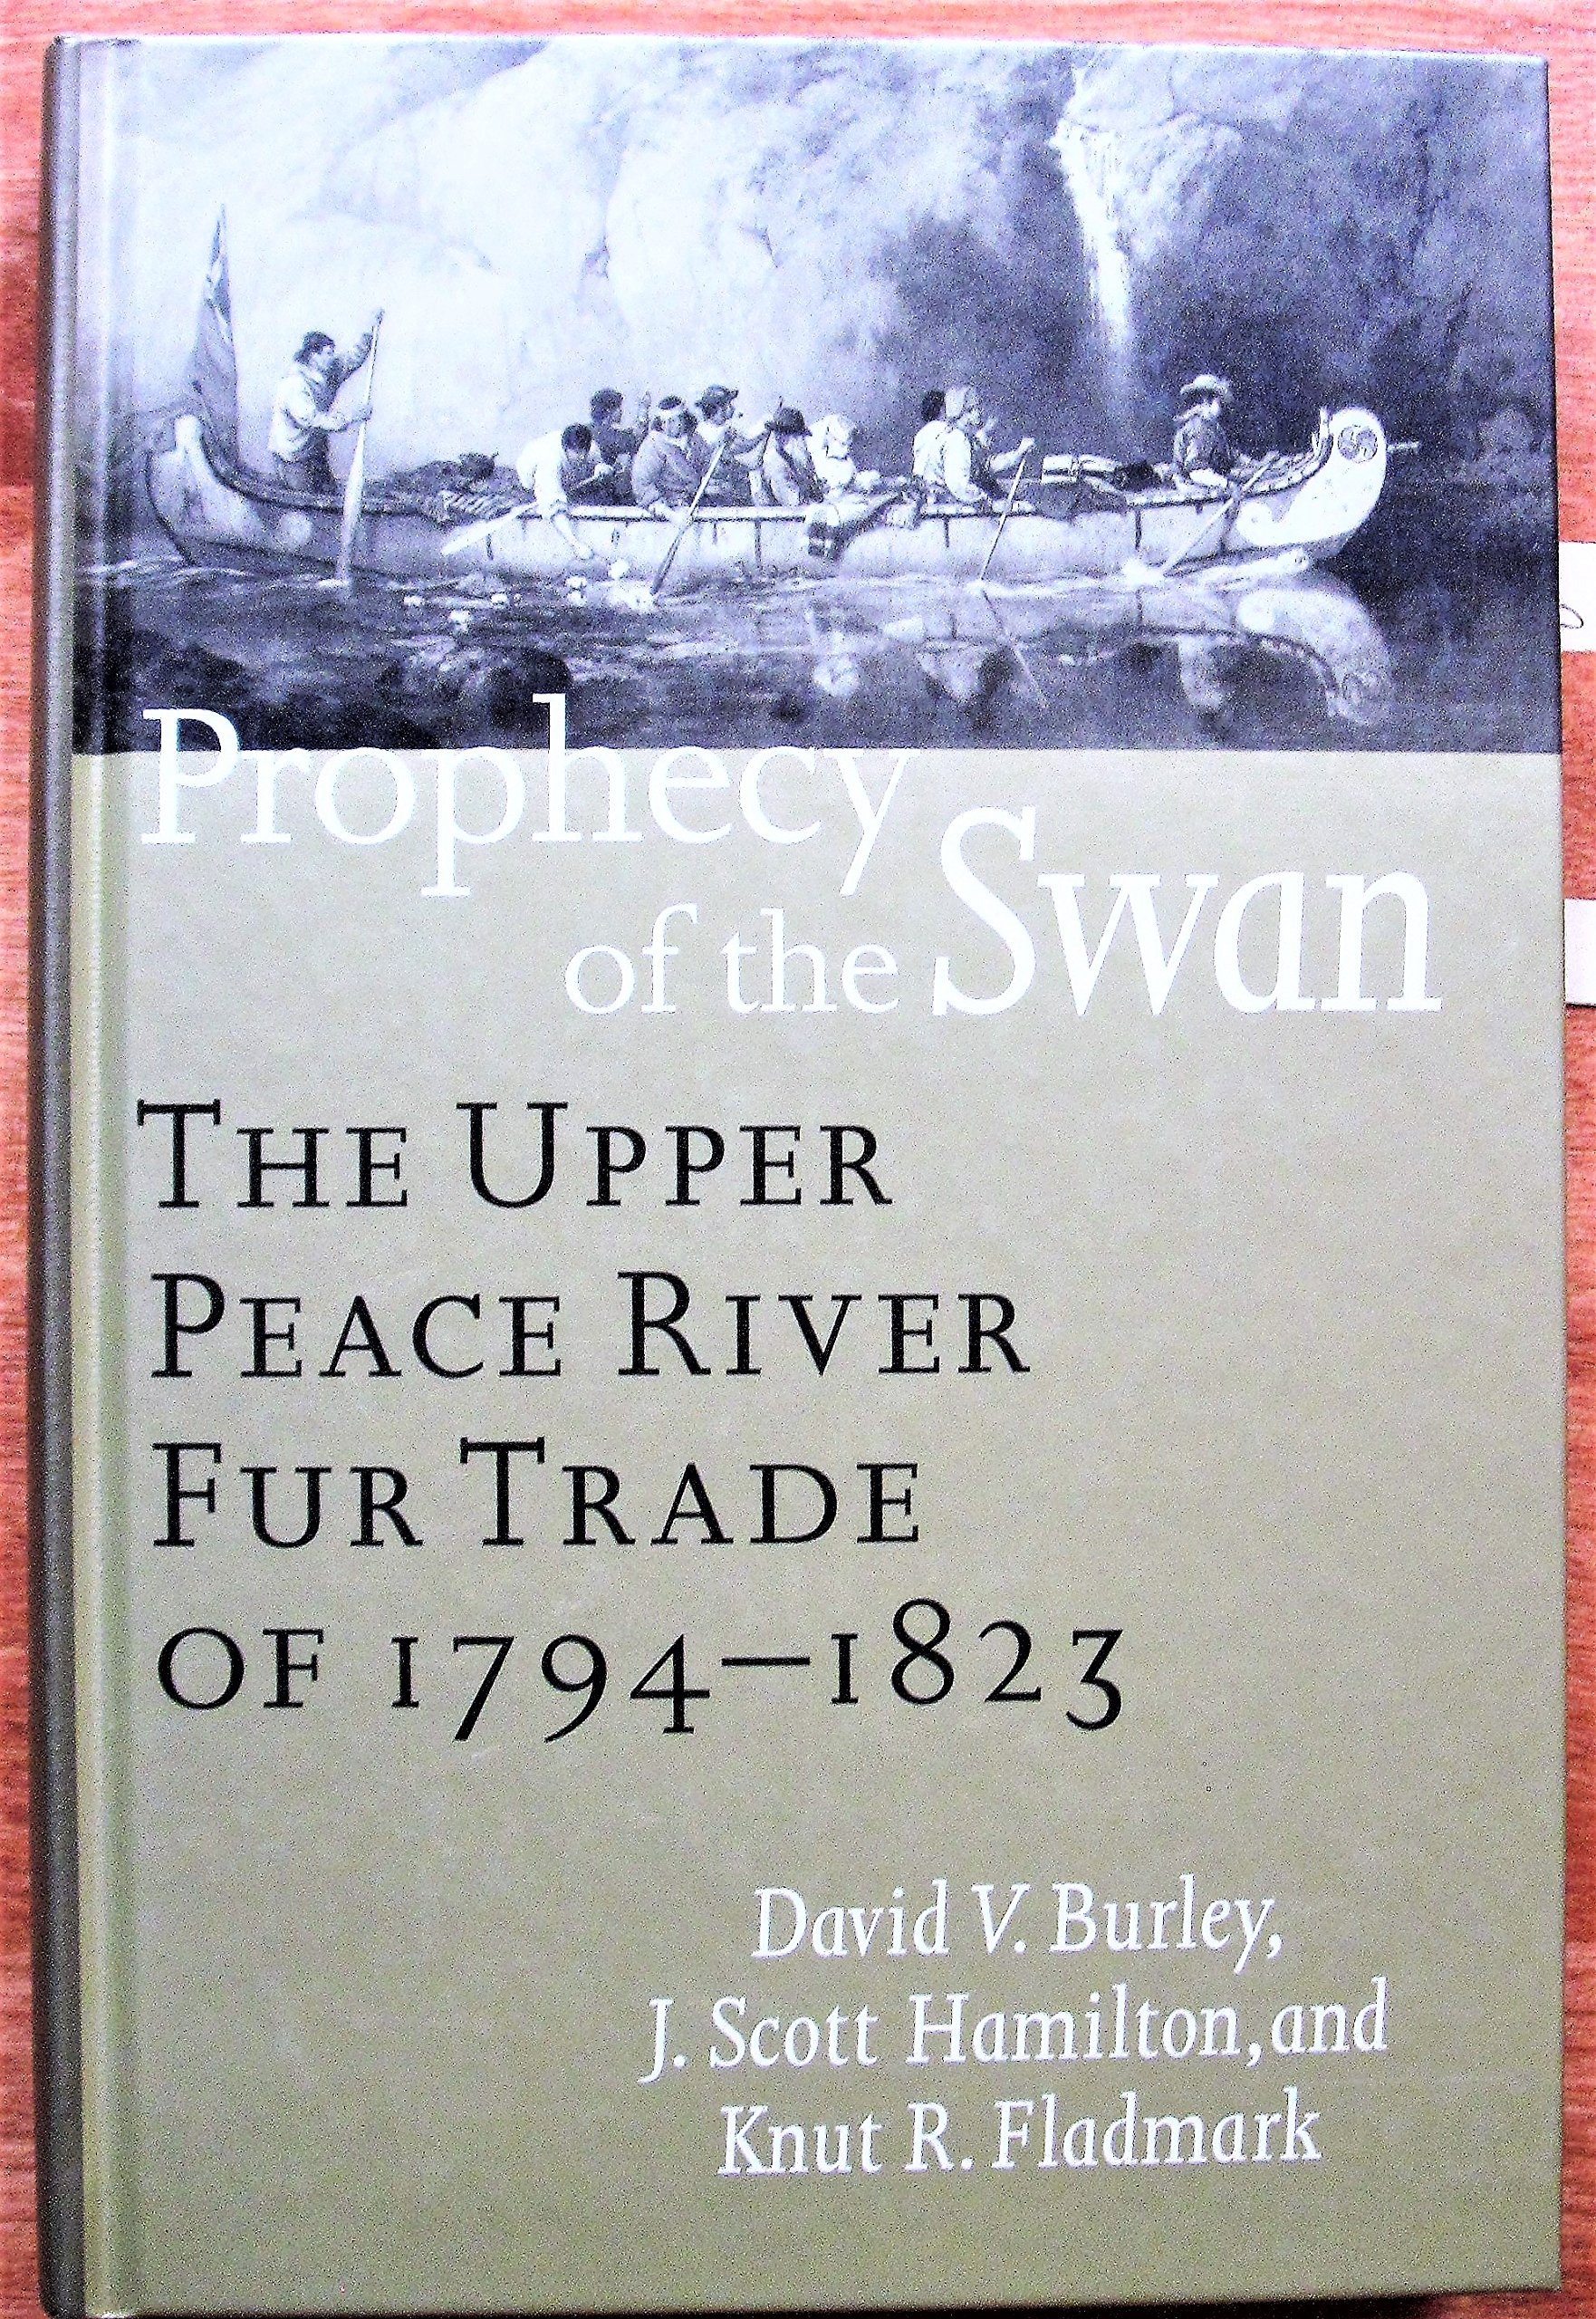 Prophecy of the Swan: The Upper Peace River Fur Trade of 1794-1823 ...